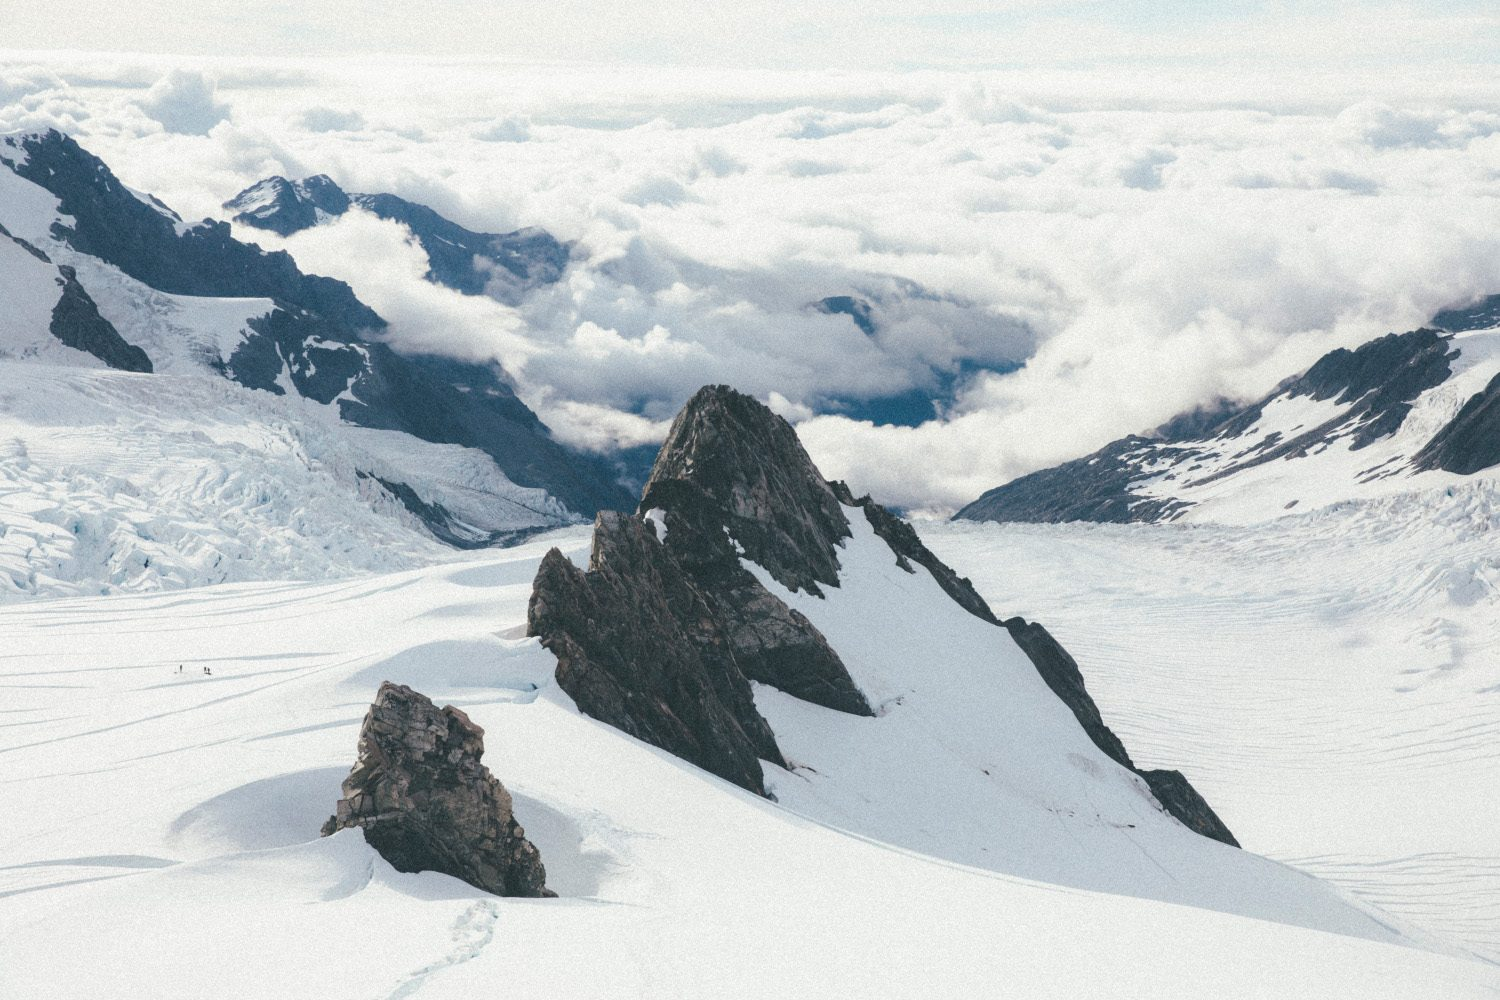 SEVEN SUMMITS COURSE IN NEW ZEALAND